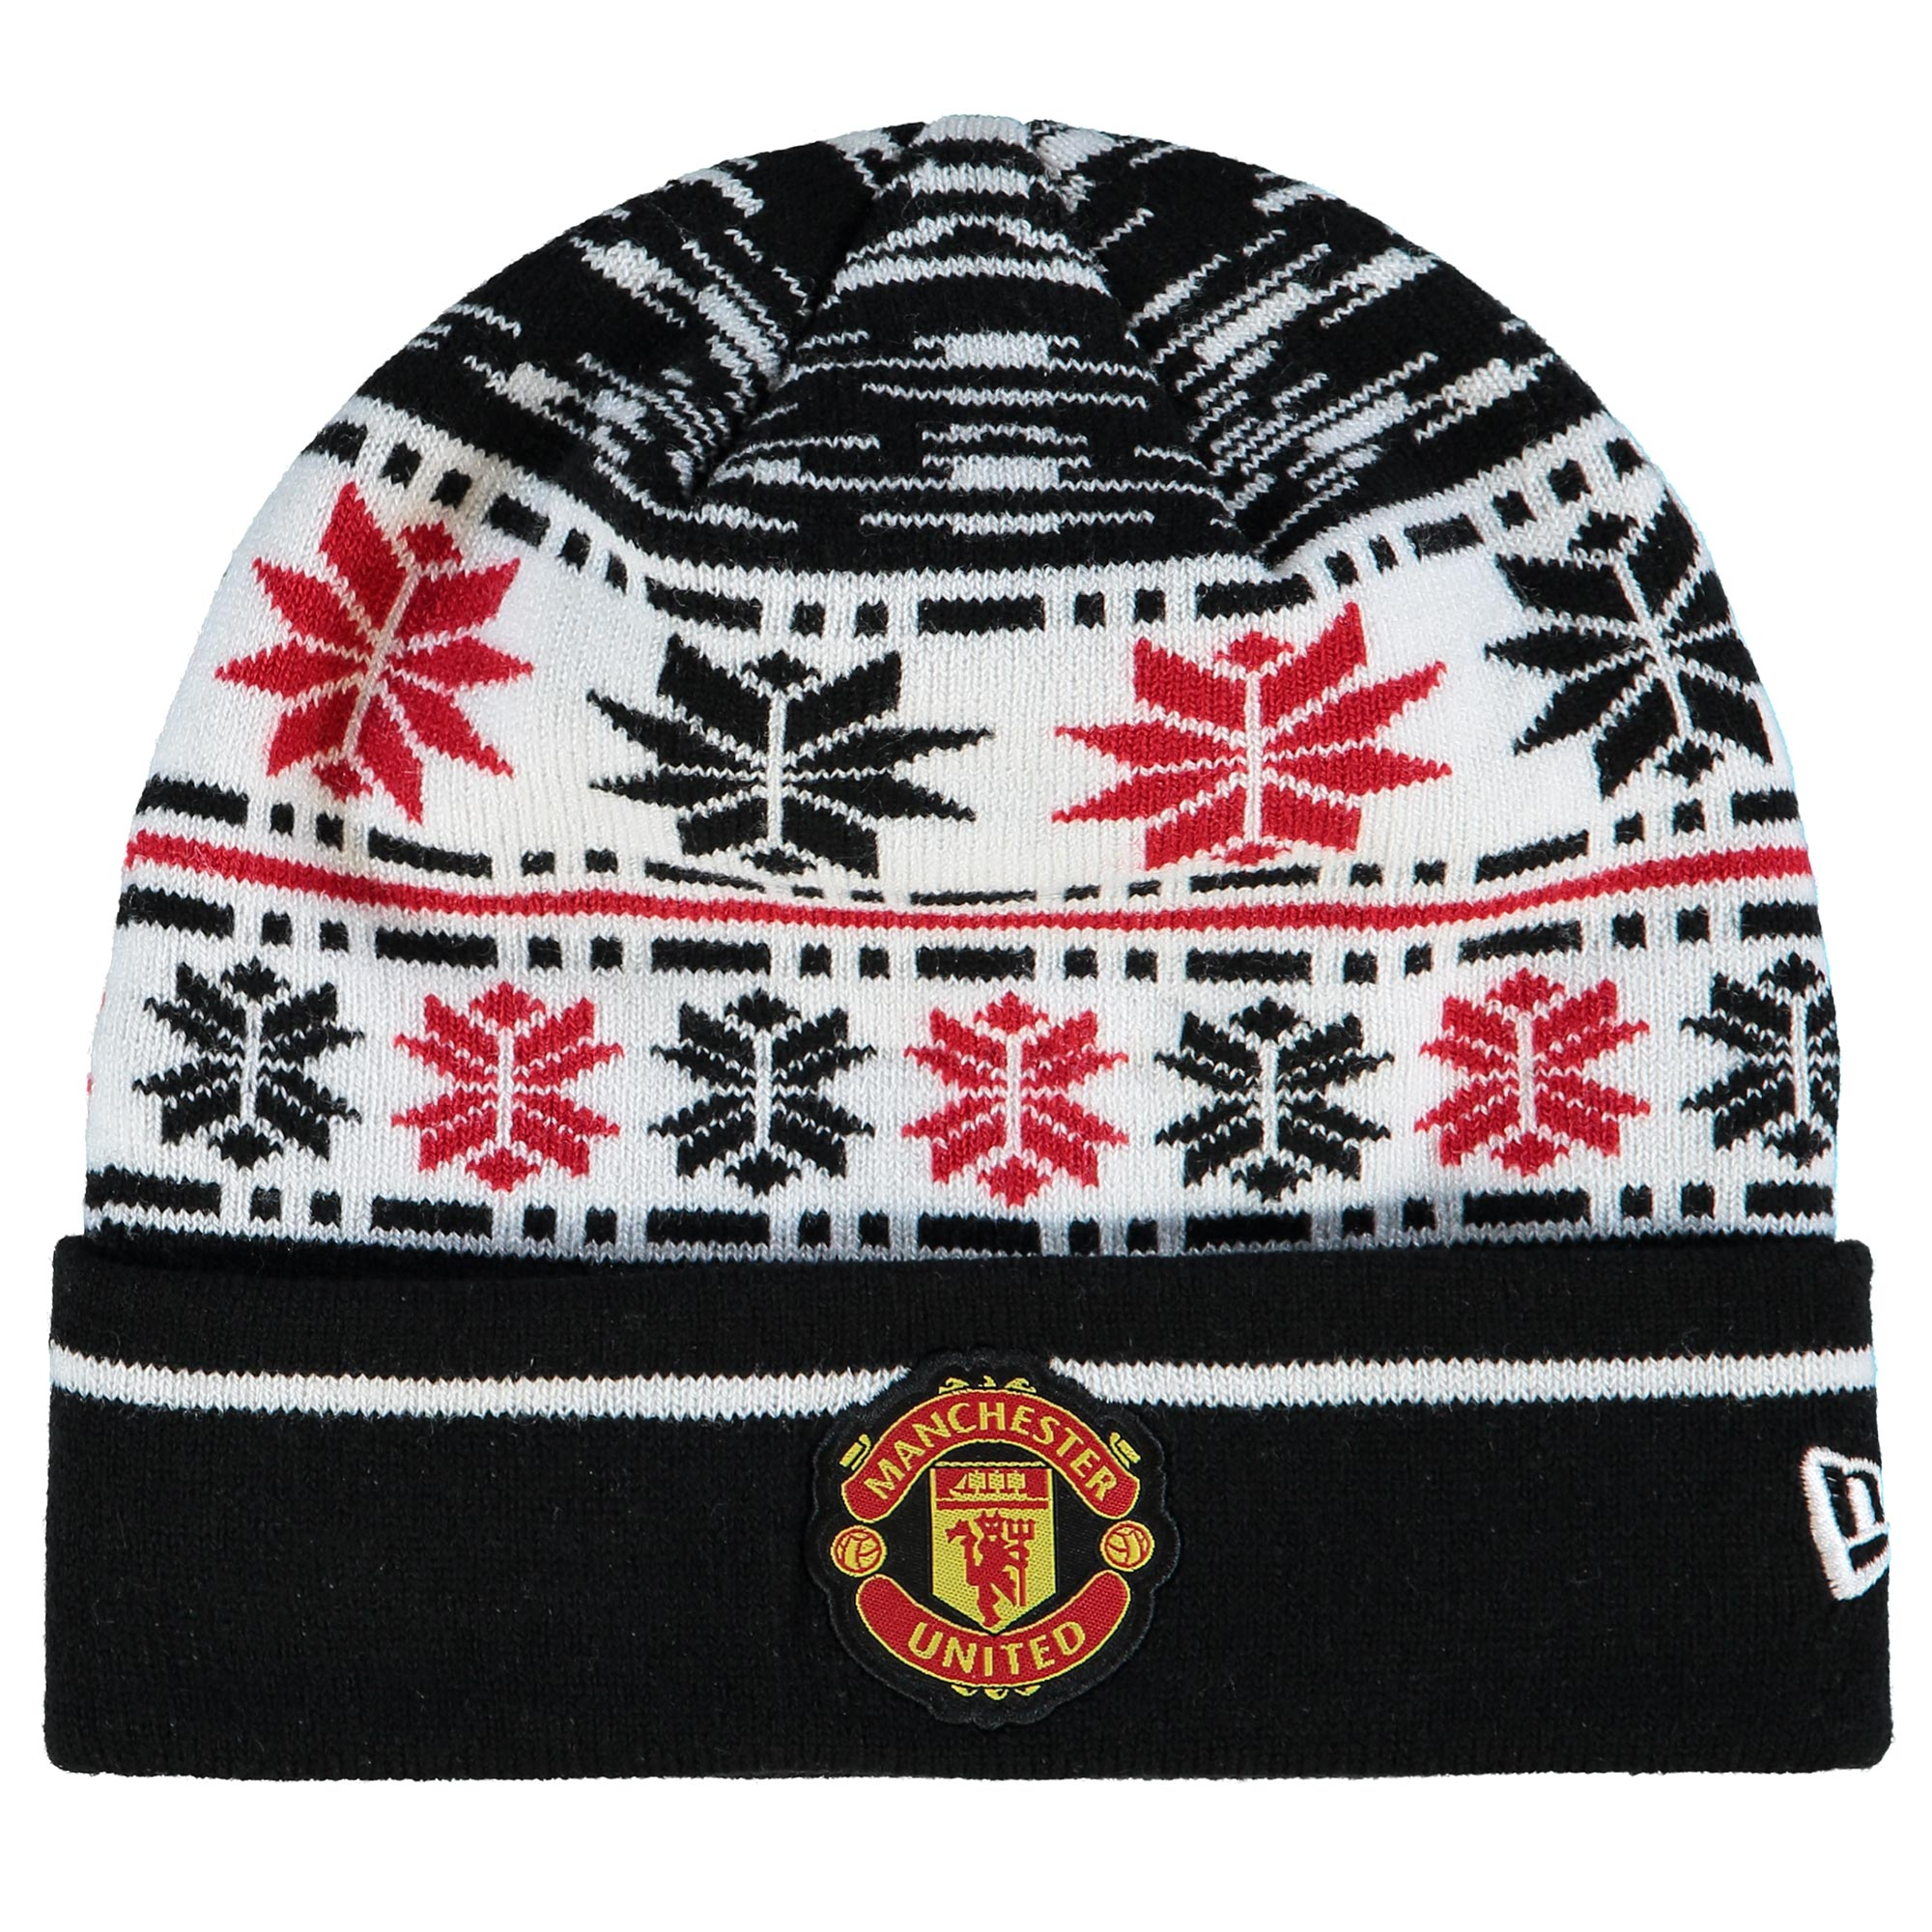 Manchester United Fairisle Knit Hat - Black - Adult